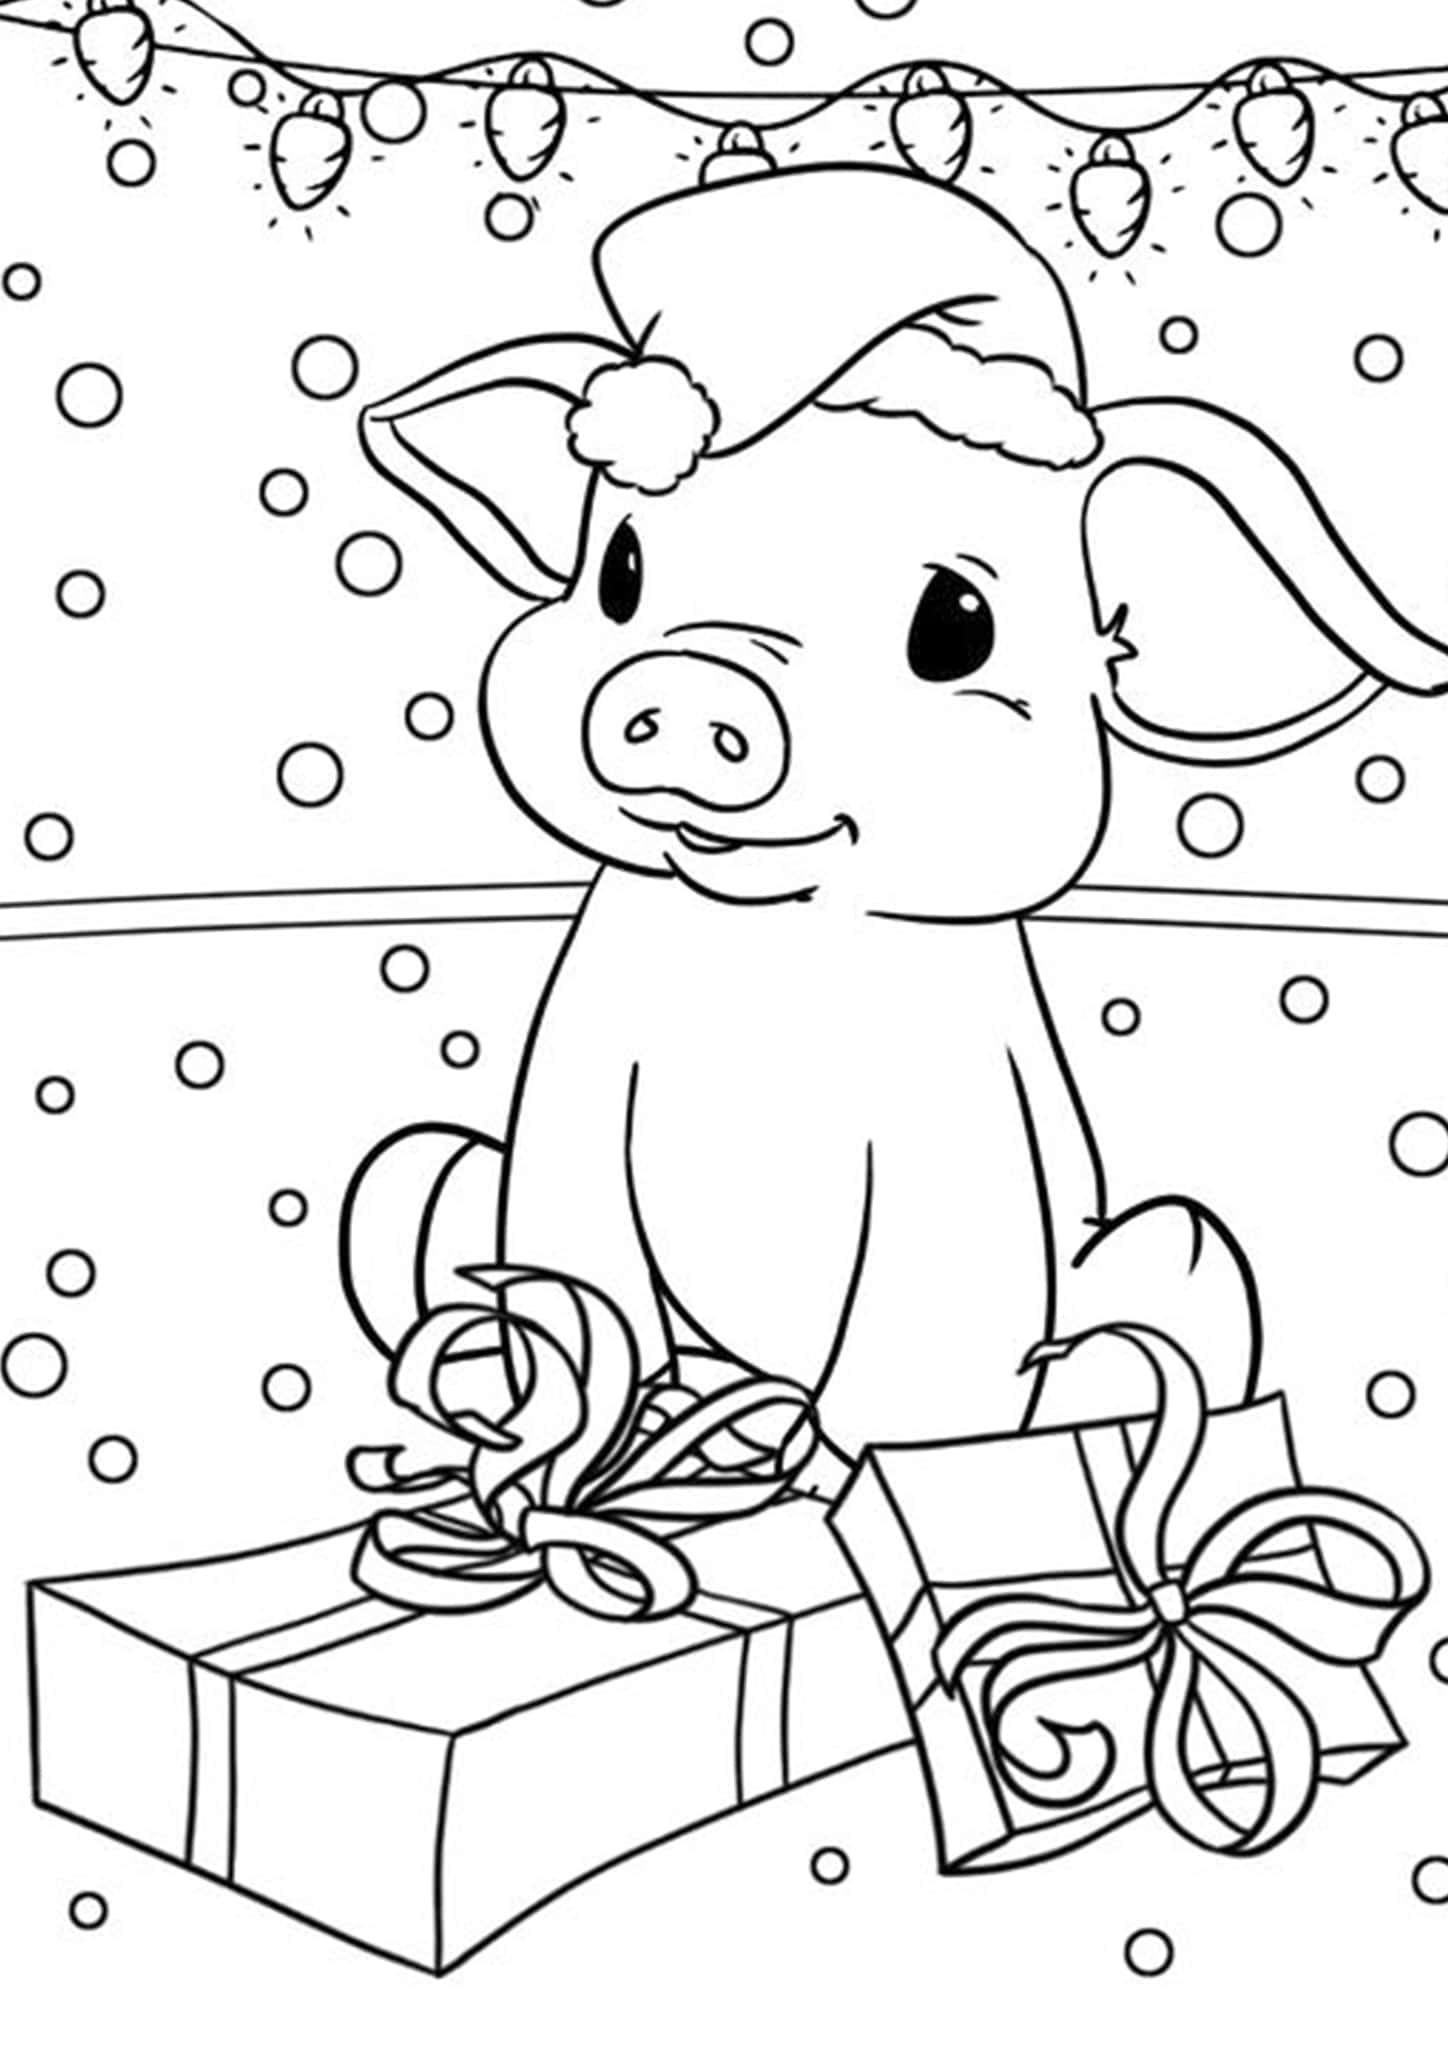 coloring page of pig pig coloring page crayolacom coloring page of pig